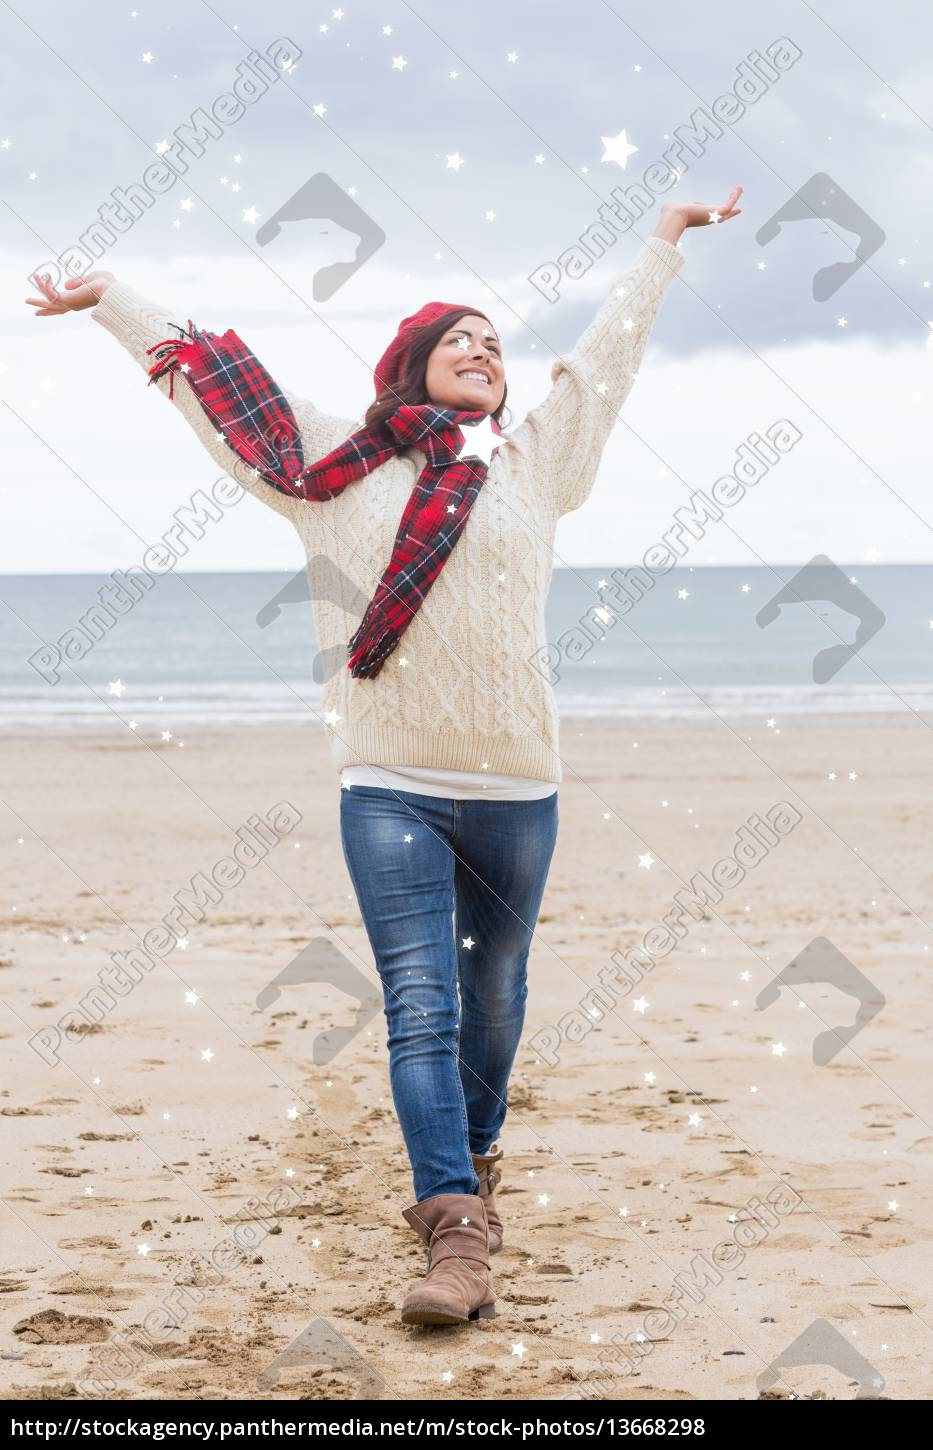 composite, image, of, woman, in, warm - 13668298